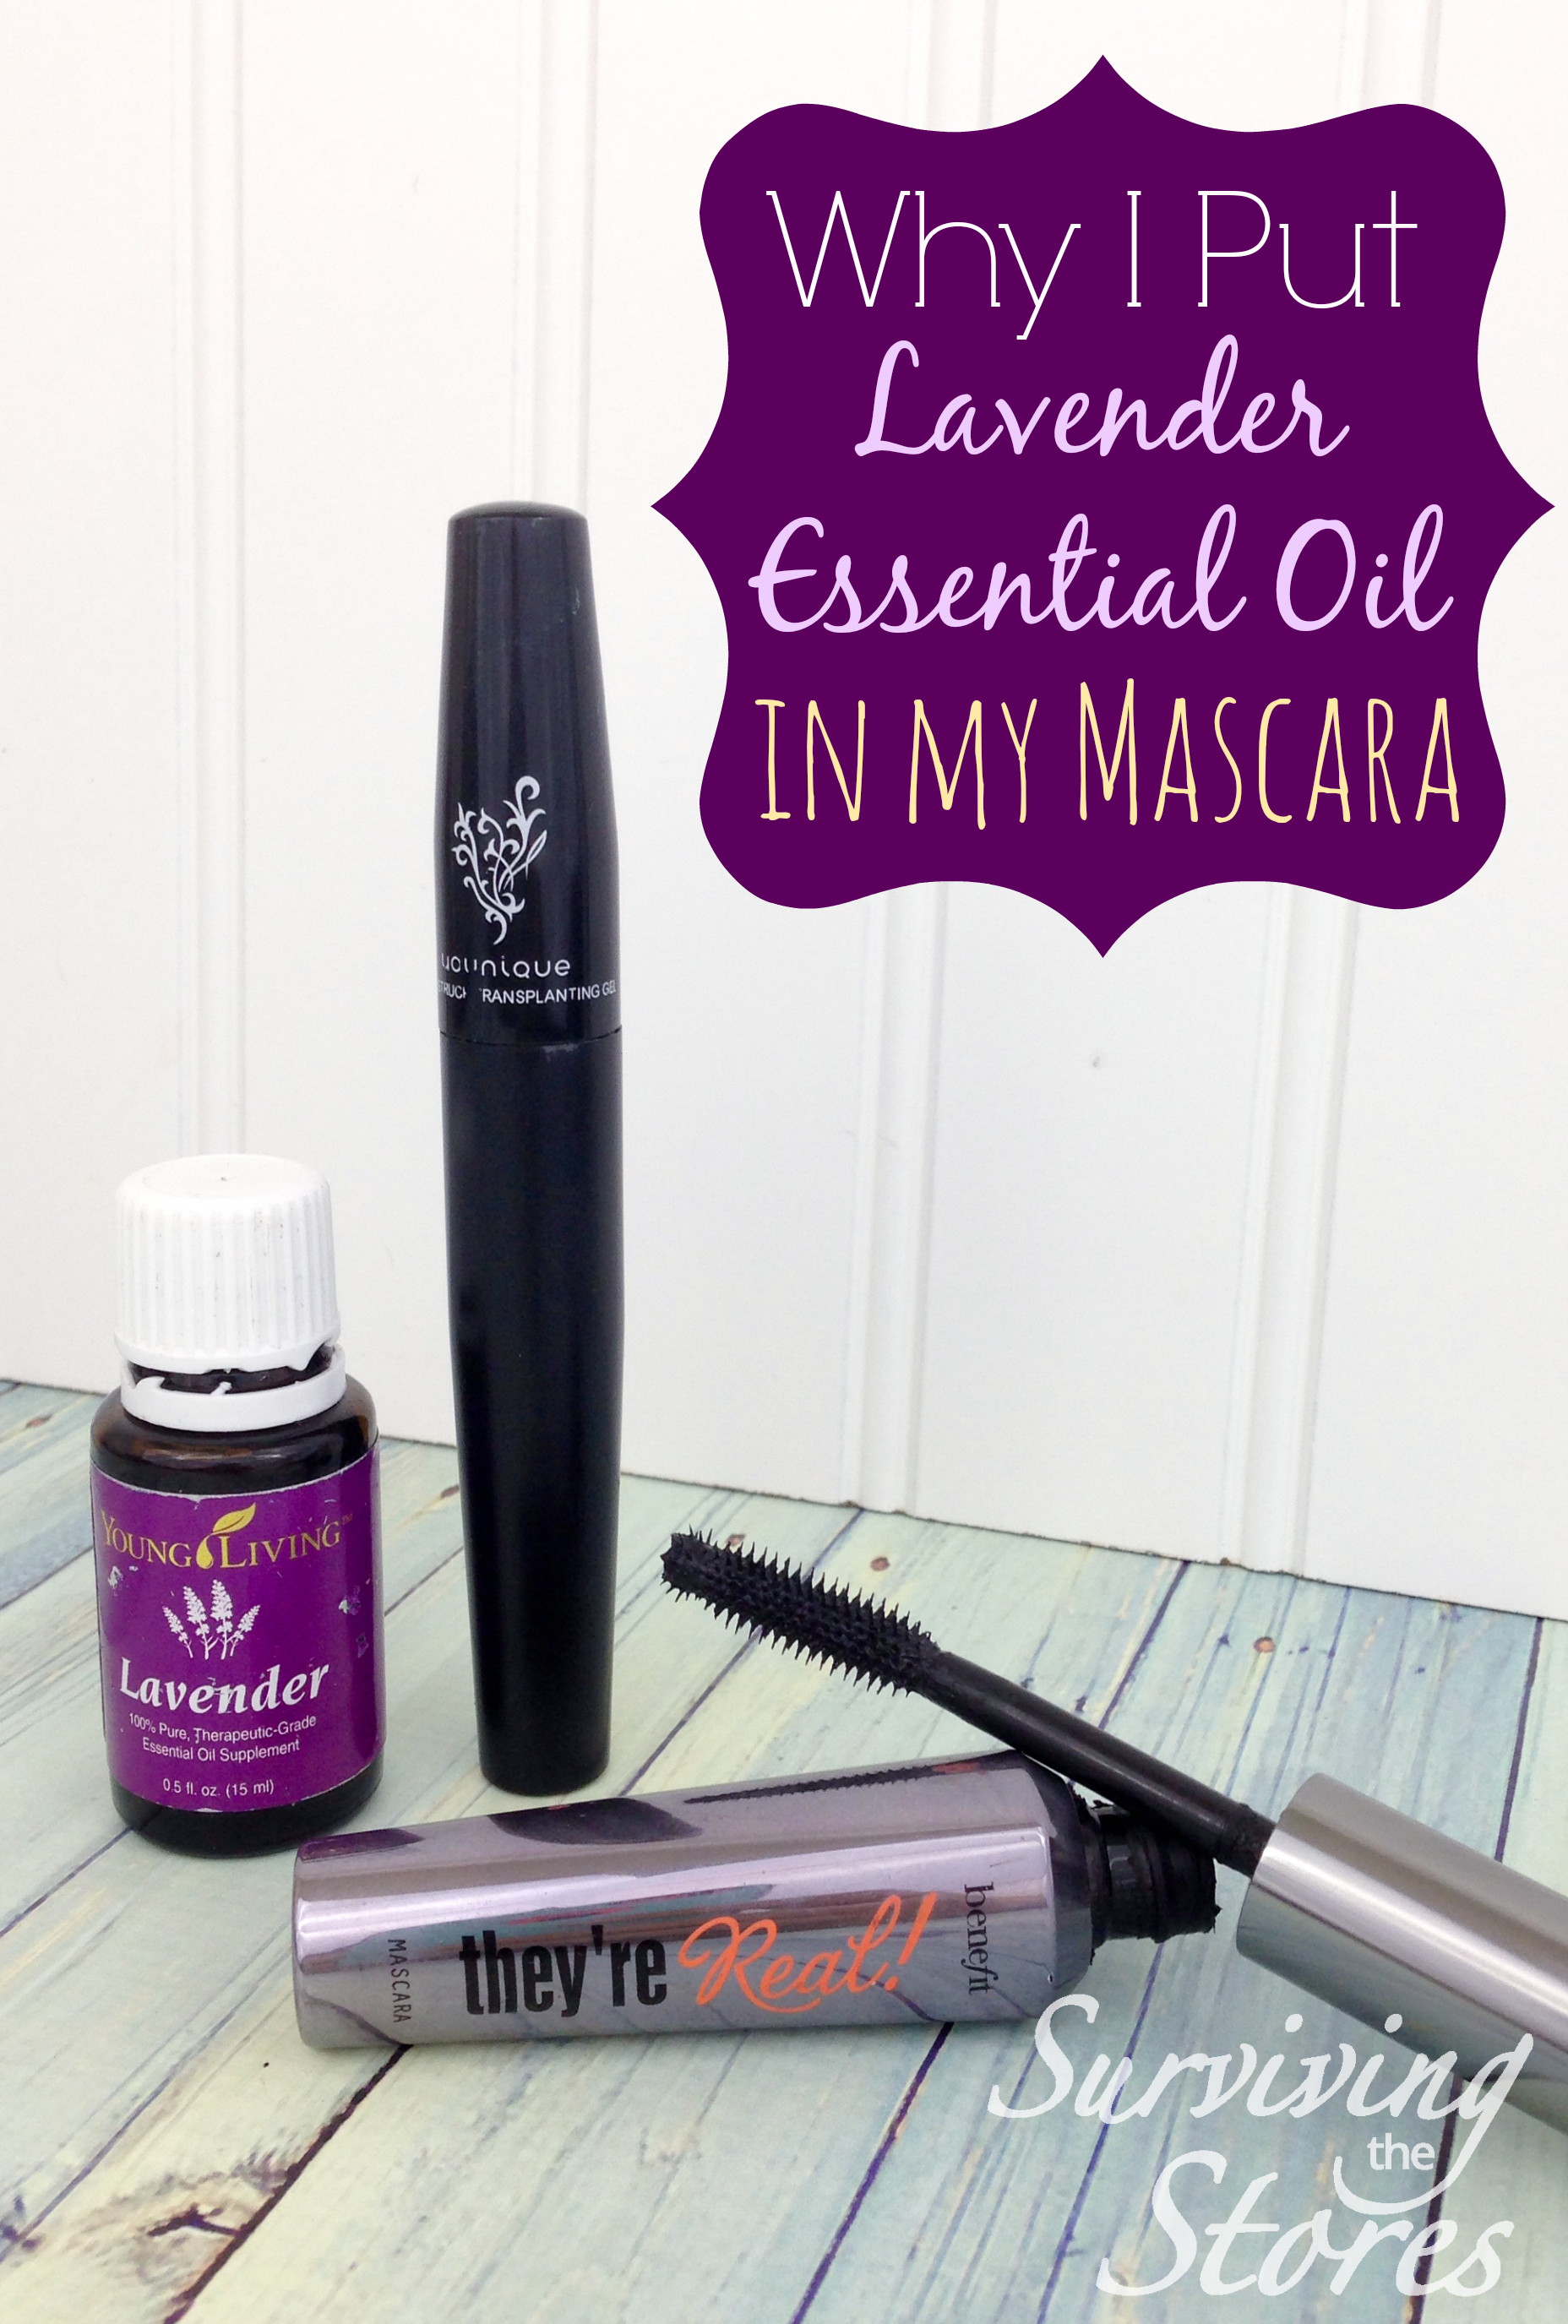 787d6abec01 How to use lavender essential oil in your mascara for longer and thicker  eyelashes! {Plus WHY it works!}